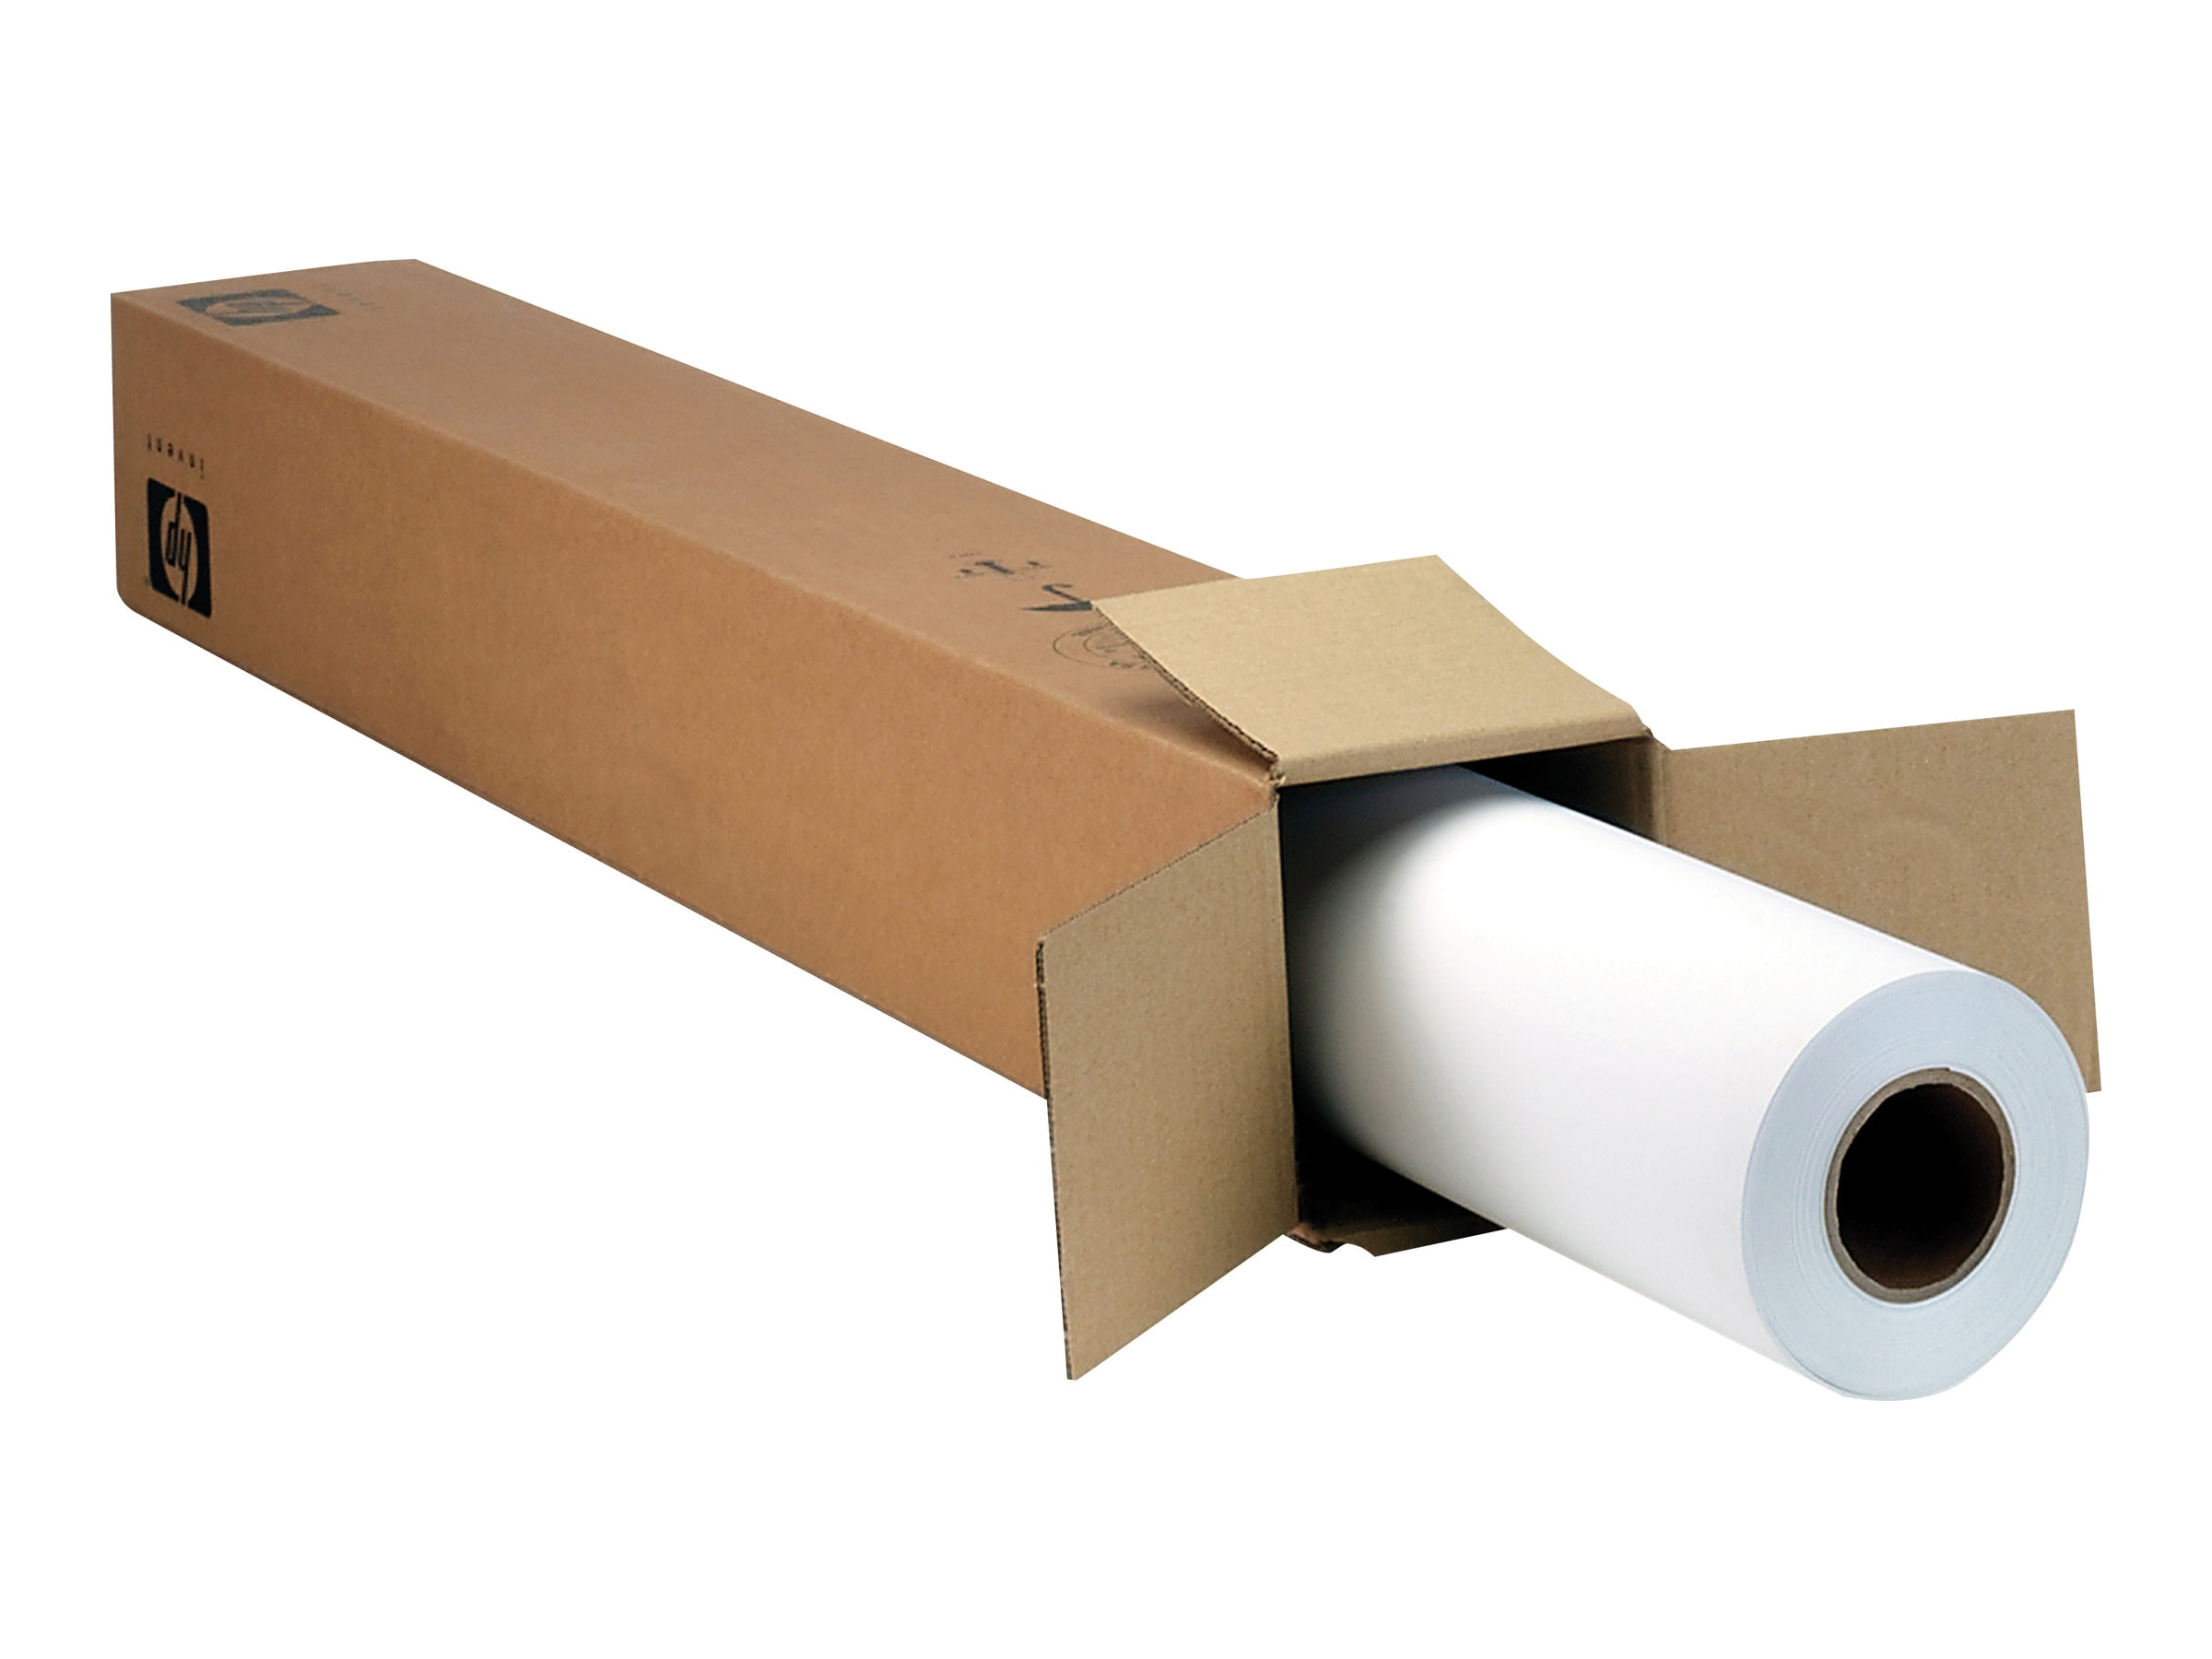 HP 24 x 100' Everyday Matte Polypropylene (2 Rolls), CH022A, 10202360, Paper, Labels & Other Print Media